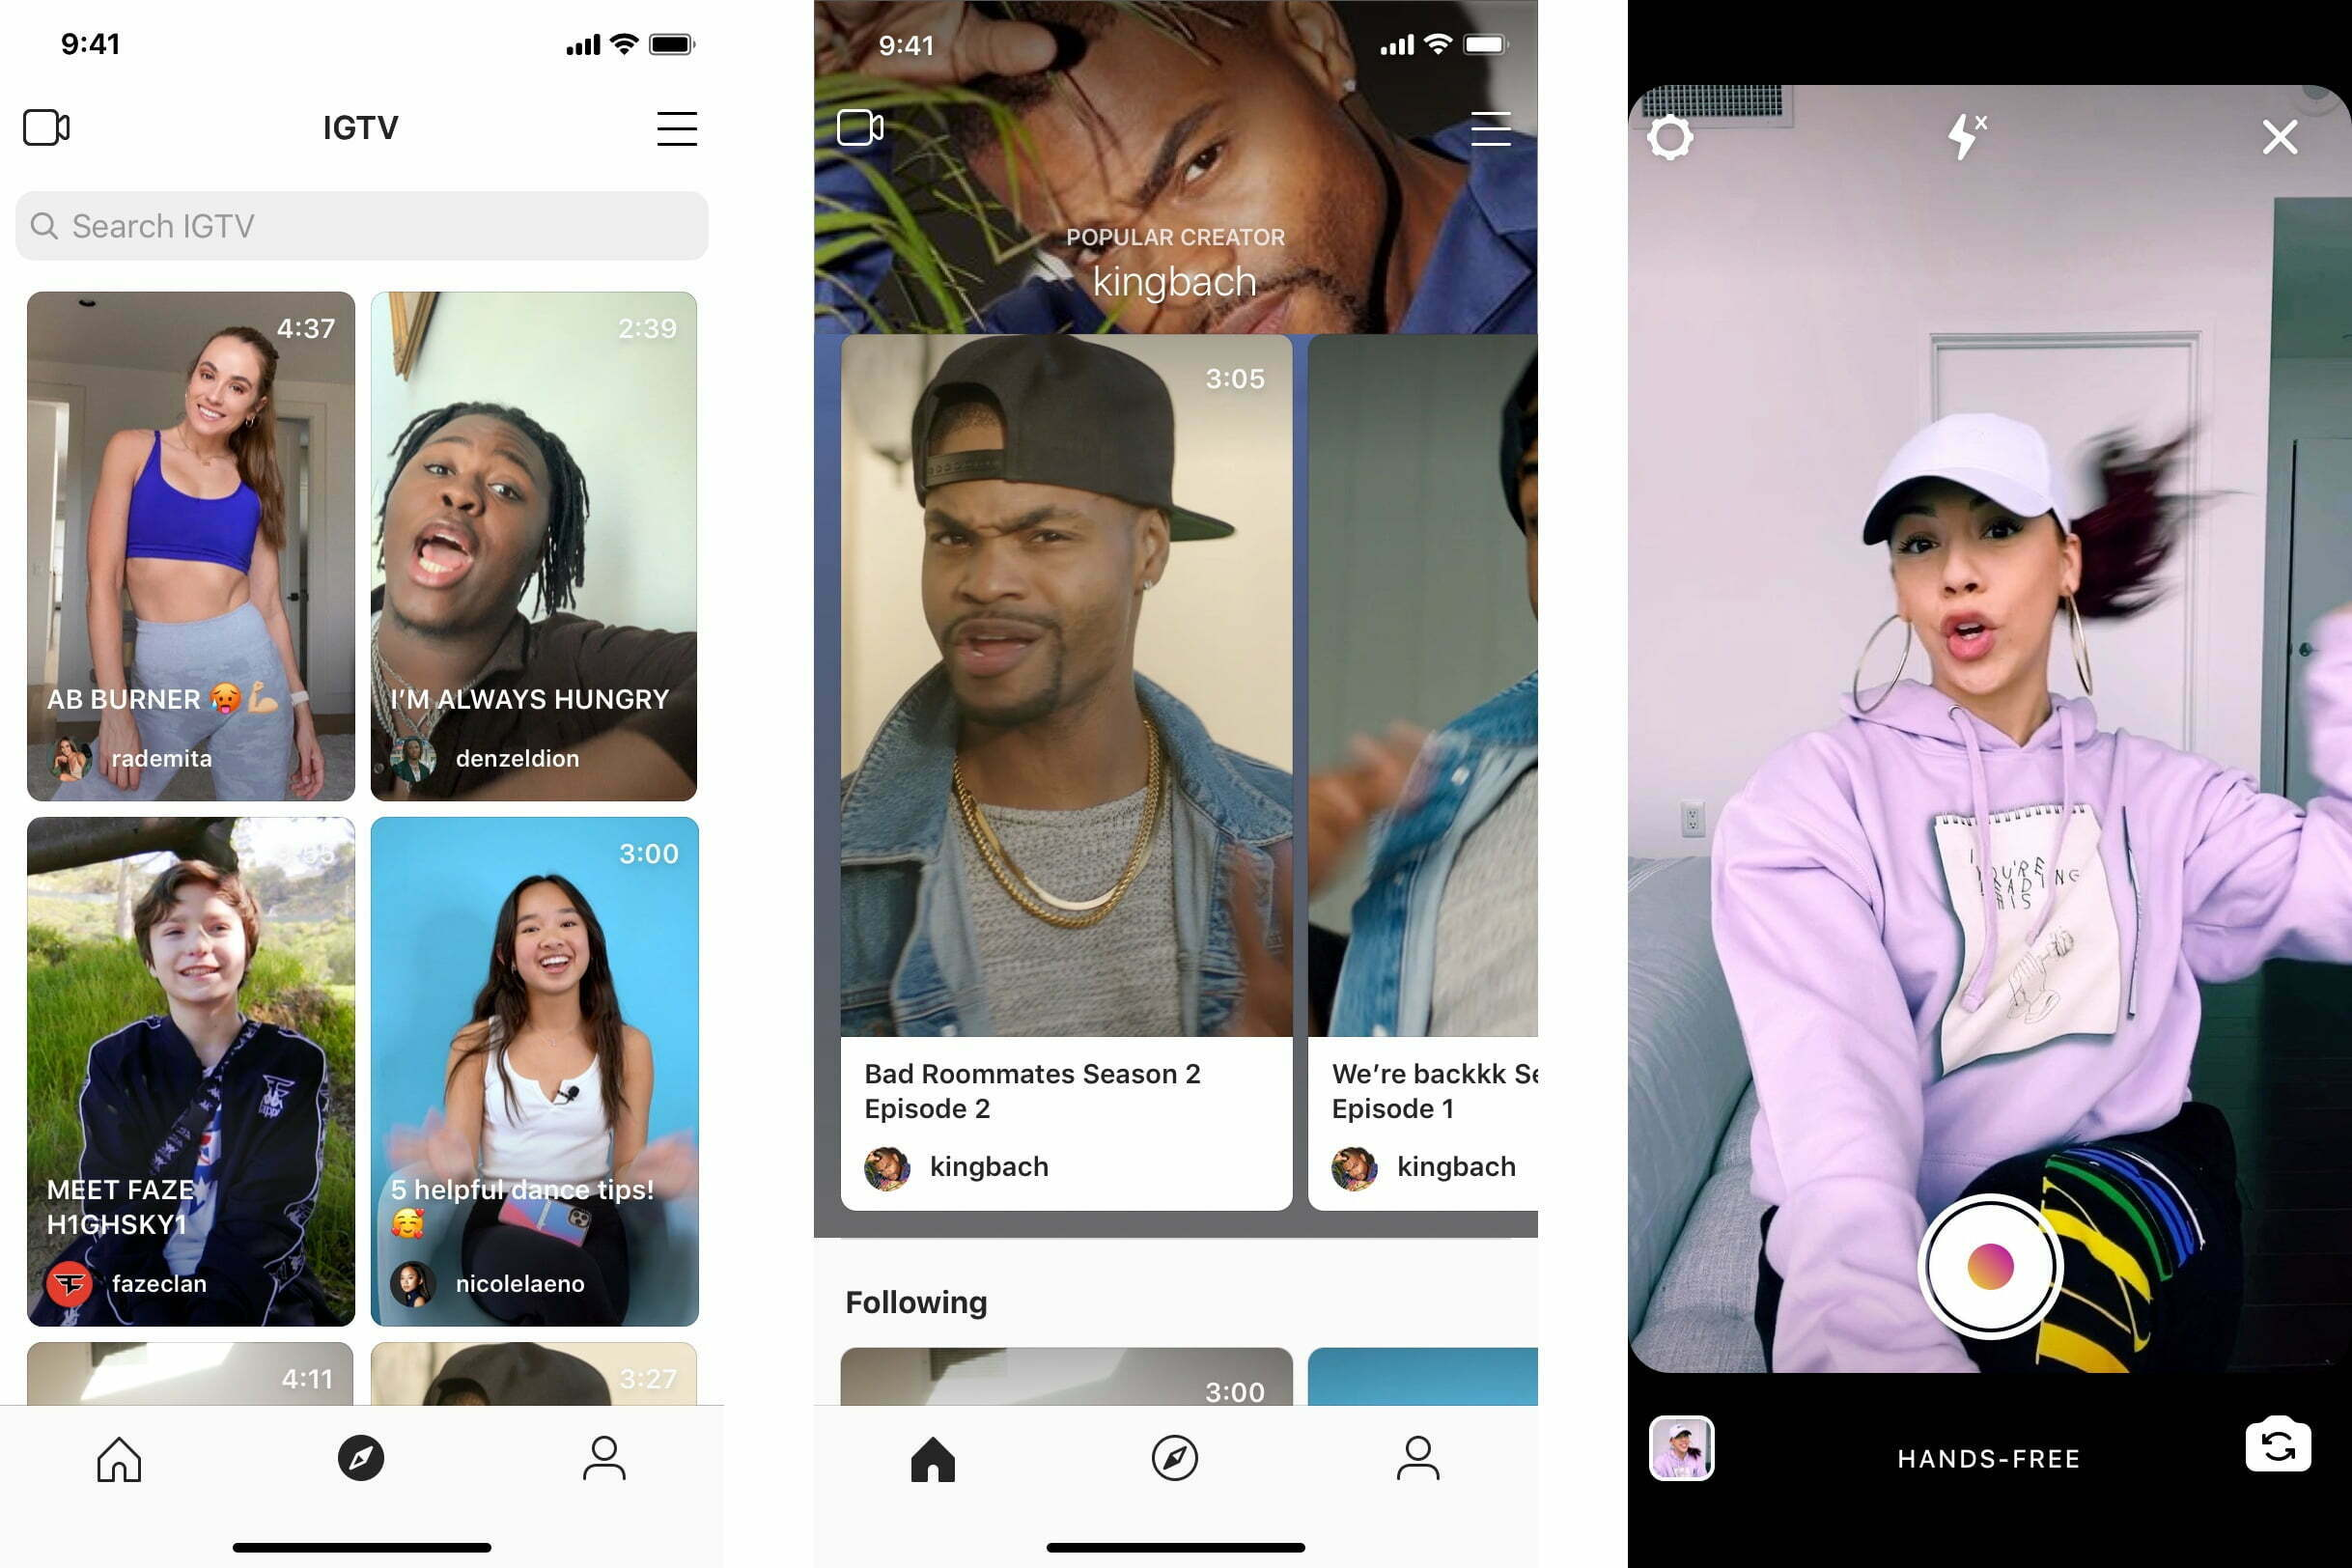 Instagram Updates IGTV App and Adds New IGTV Preview Option for Stories